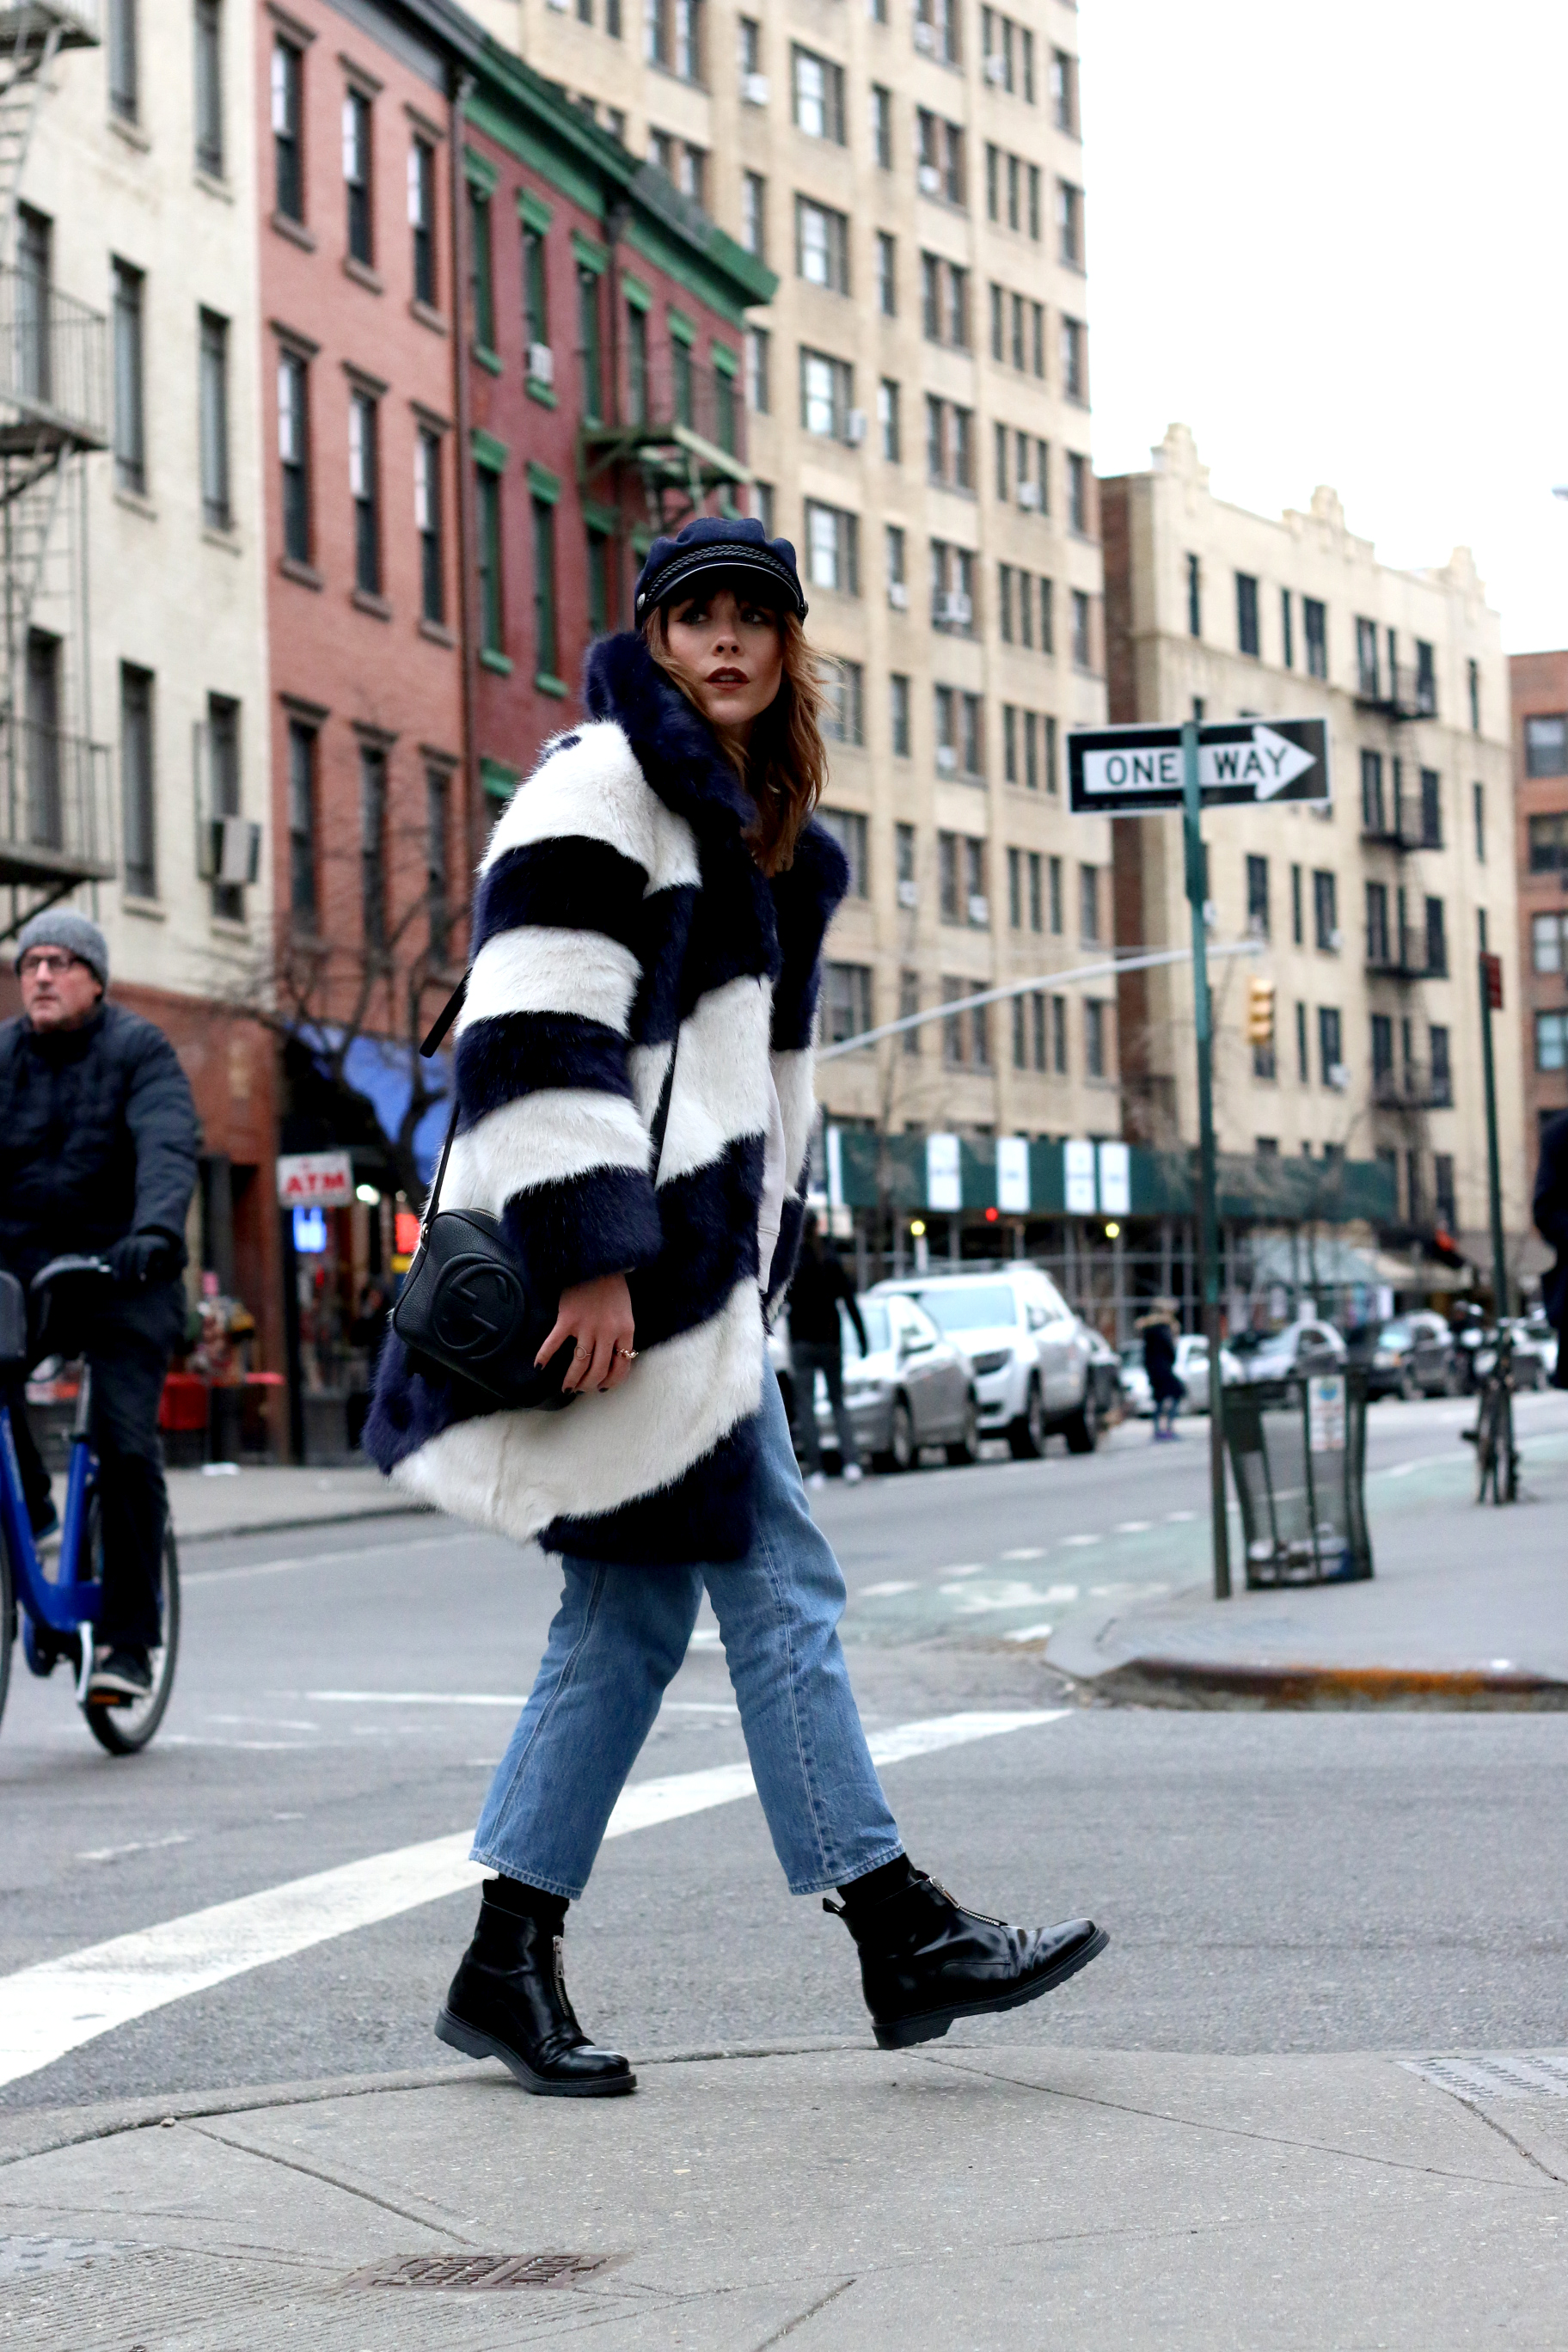 MEGAN ELLABY WEARS J CREW FAUX FUR COAT